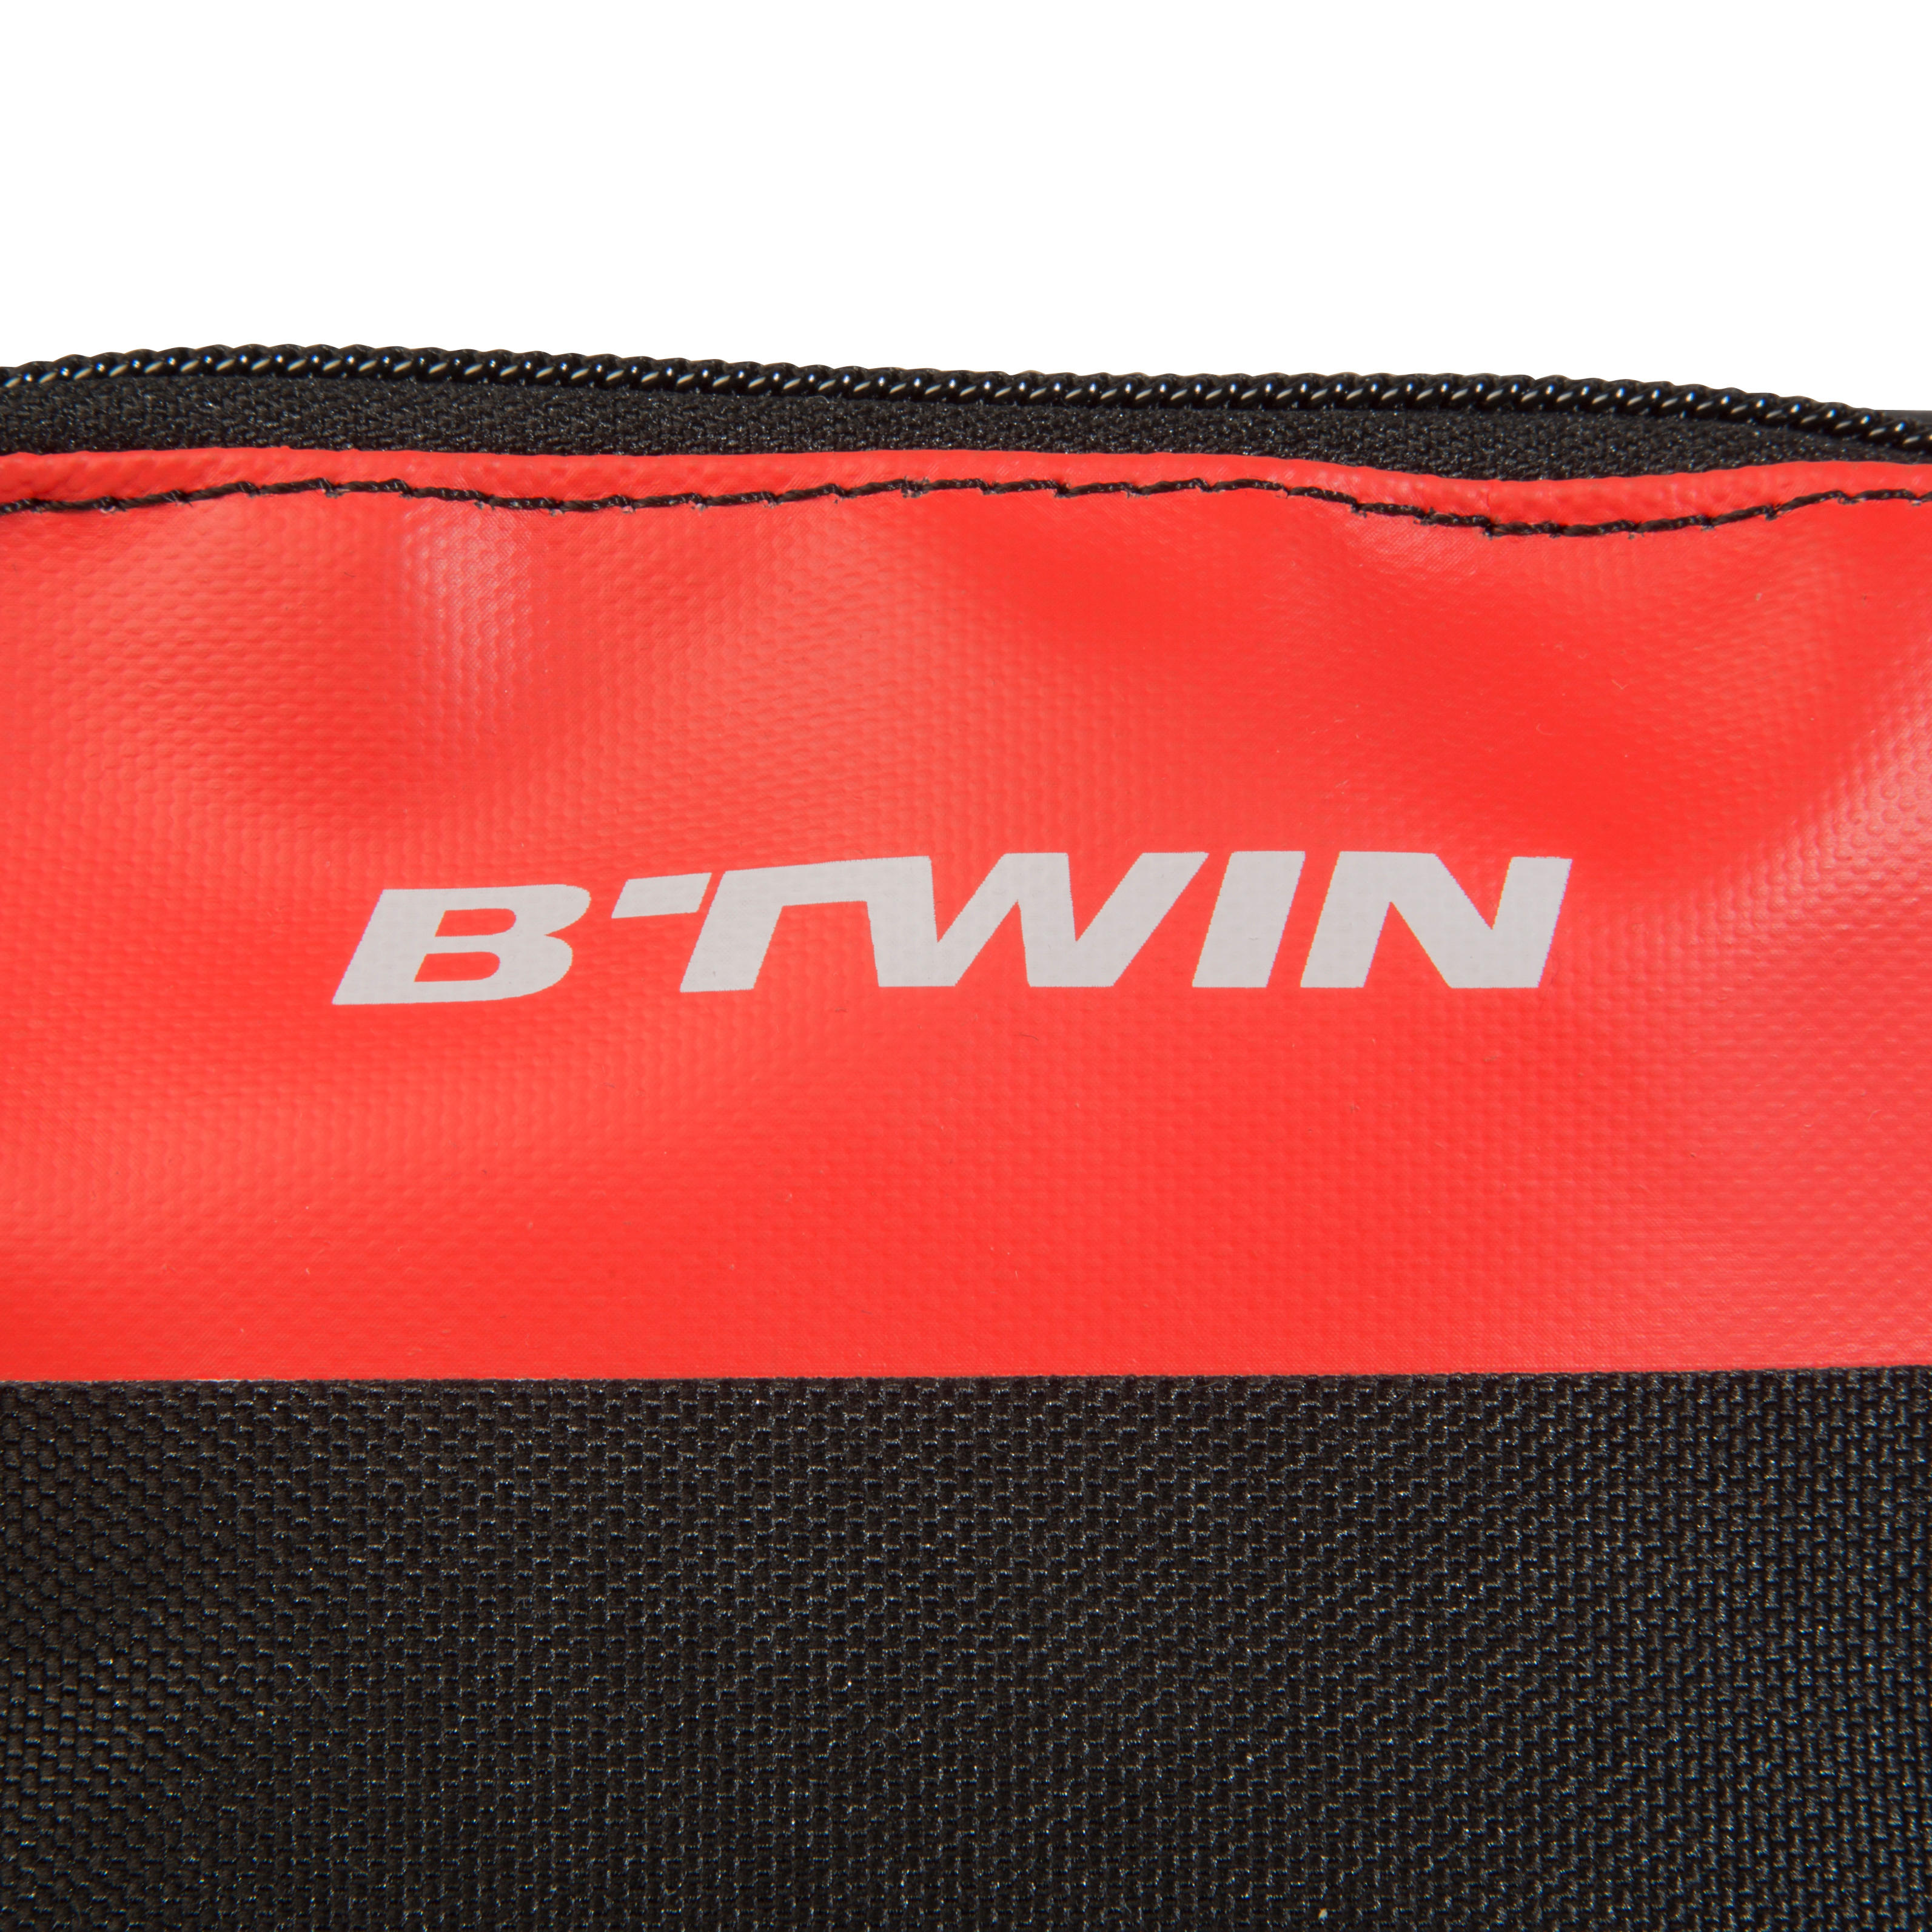 500 Double 1L Bike Frame Bag - Red